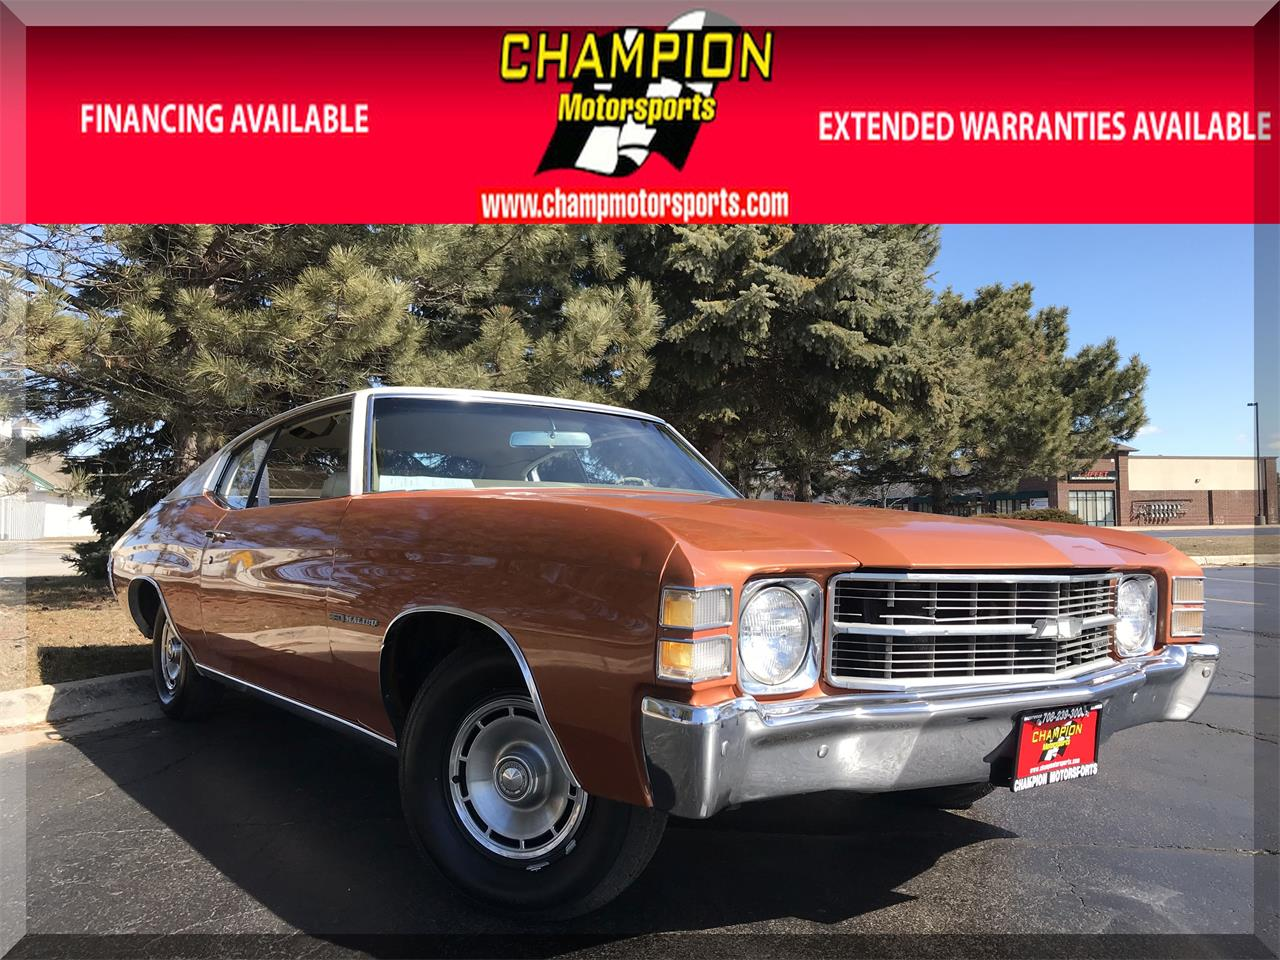 Large Picture of Classic '71 Chevelle Malibu - $15,995.00 Offered by Champion Motorsports - N55J